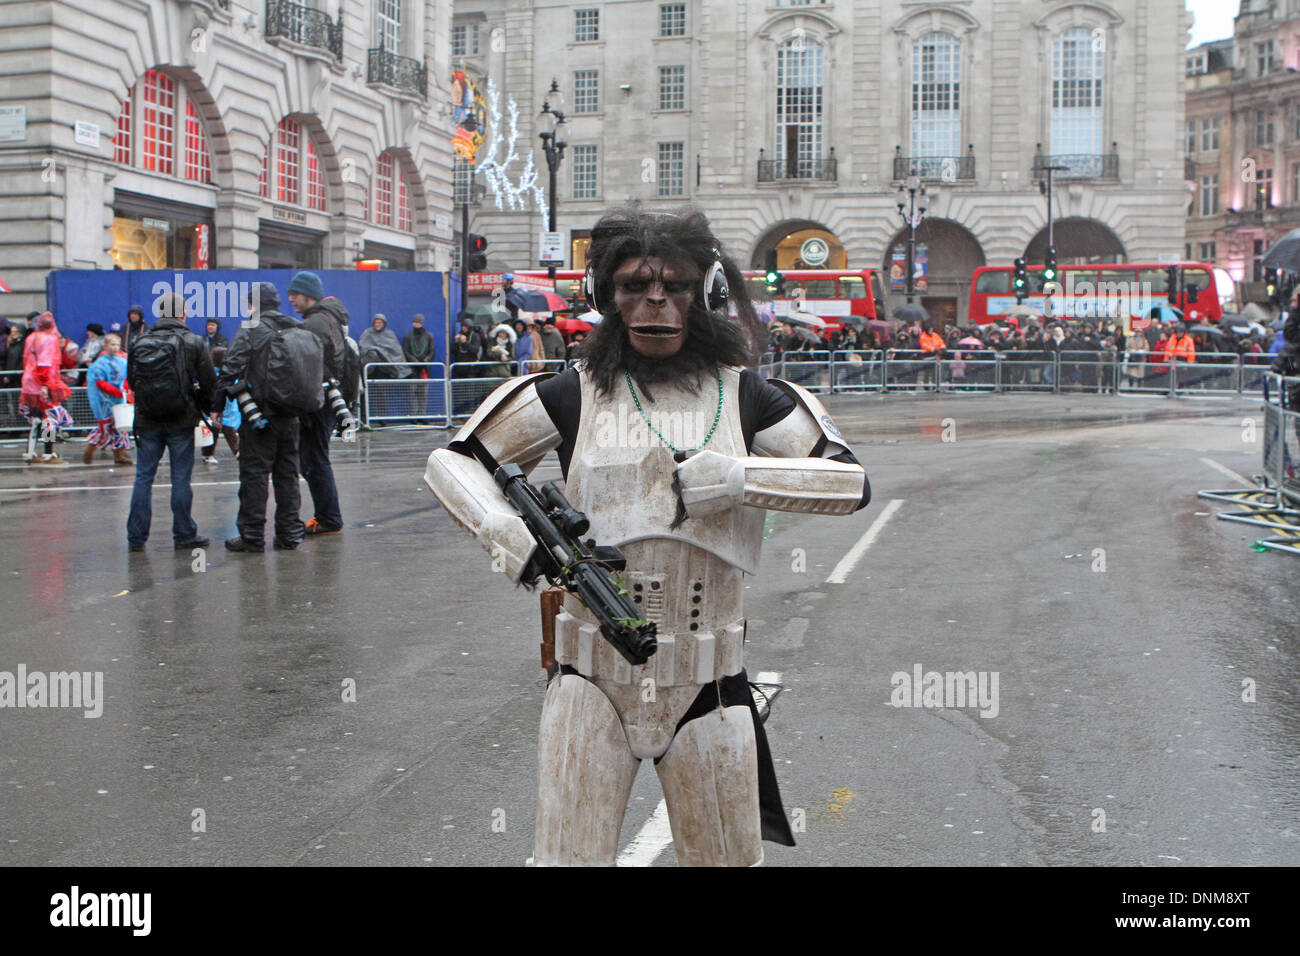 London,UK,1st January 2014,A cross between planet of the apes and star wars costume at the London's New Year's Day Stock Photo